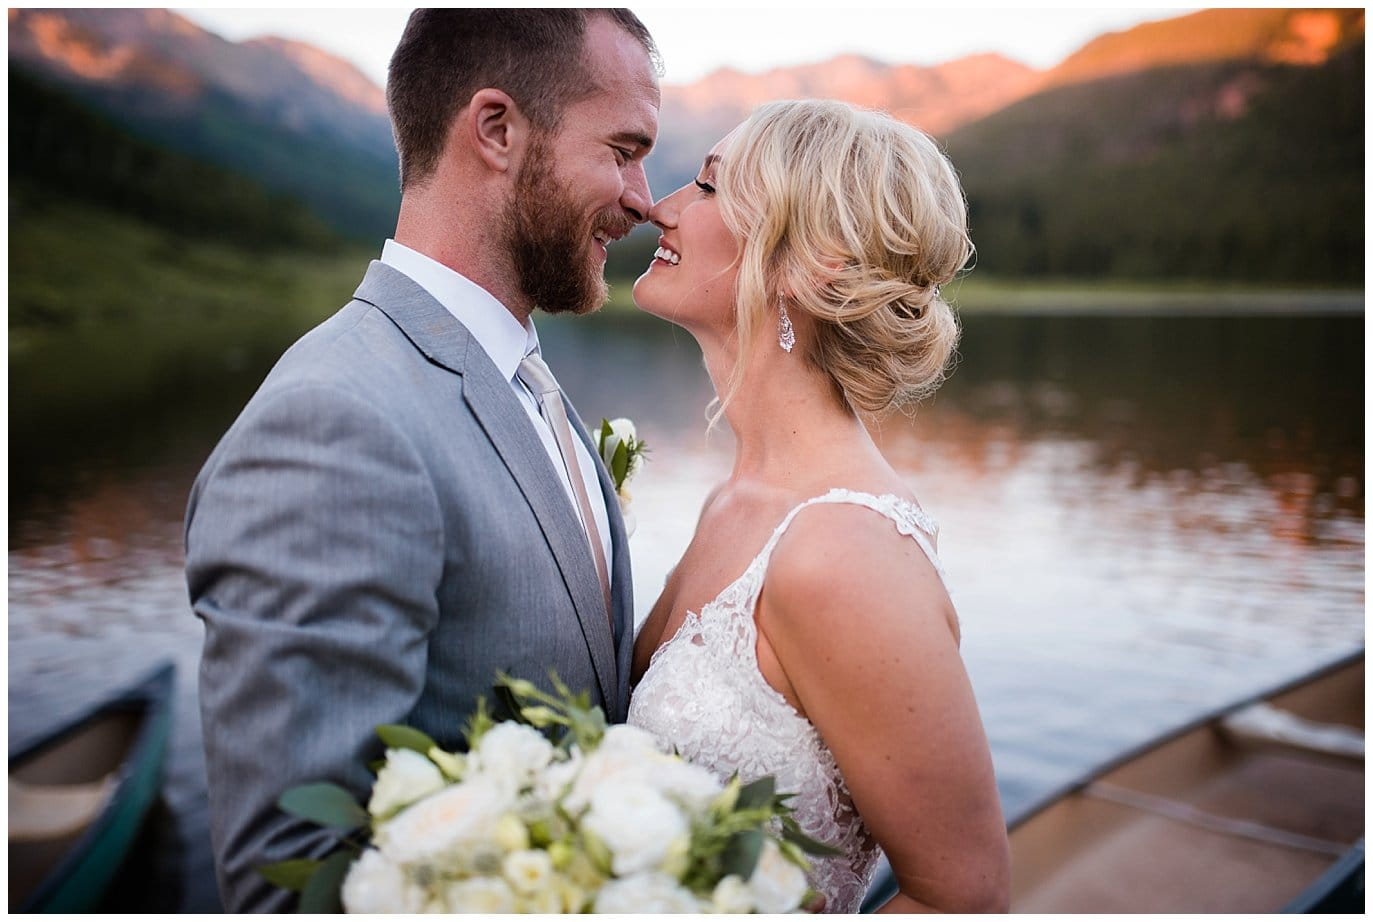 intimate sunset bride and groom portrait with alpenglow at Piney River Ranch wedding by Beaver Creek wedding photographer Jennie Crate, Photographer